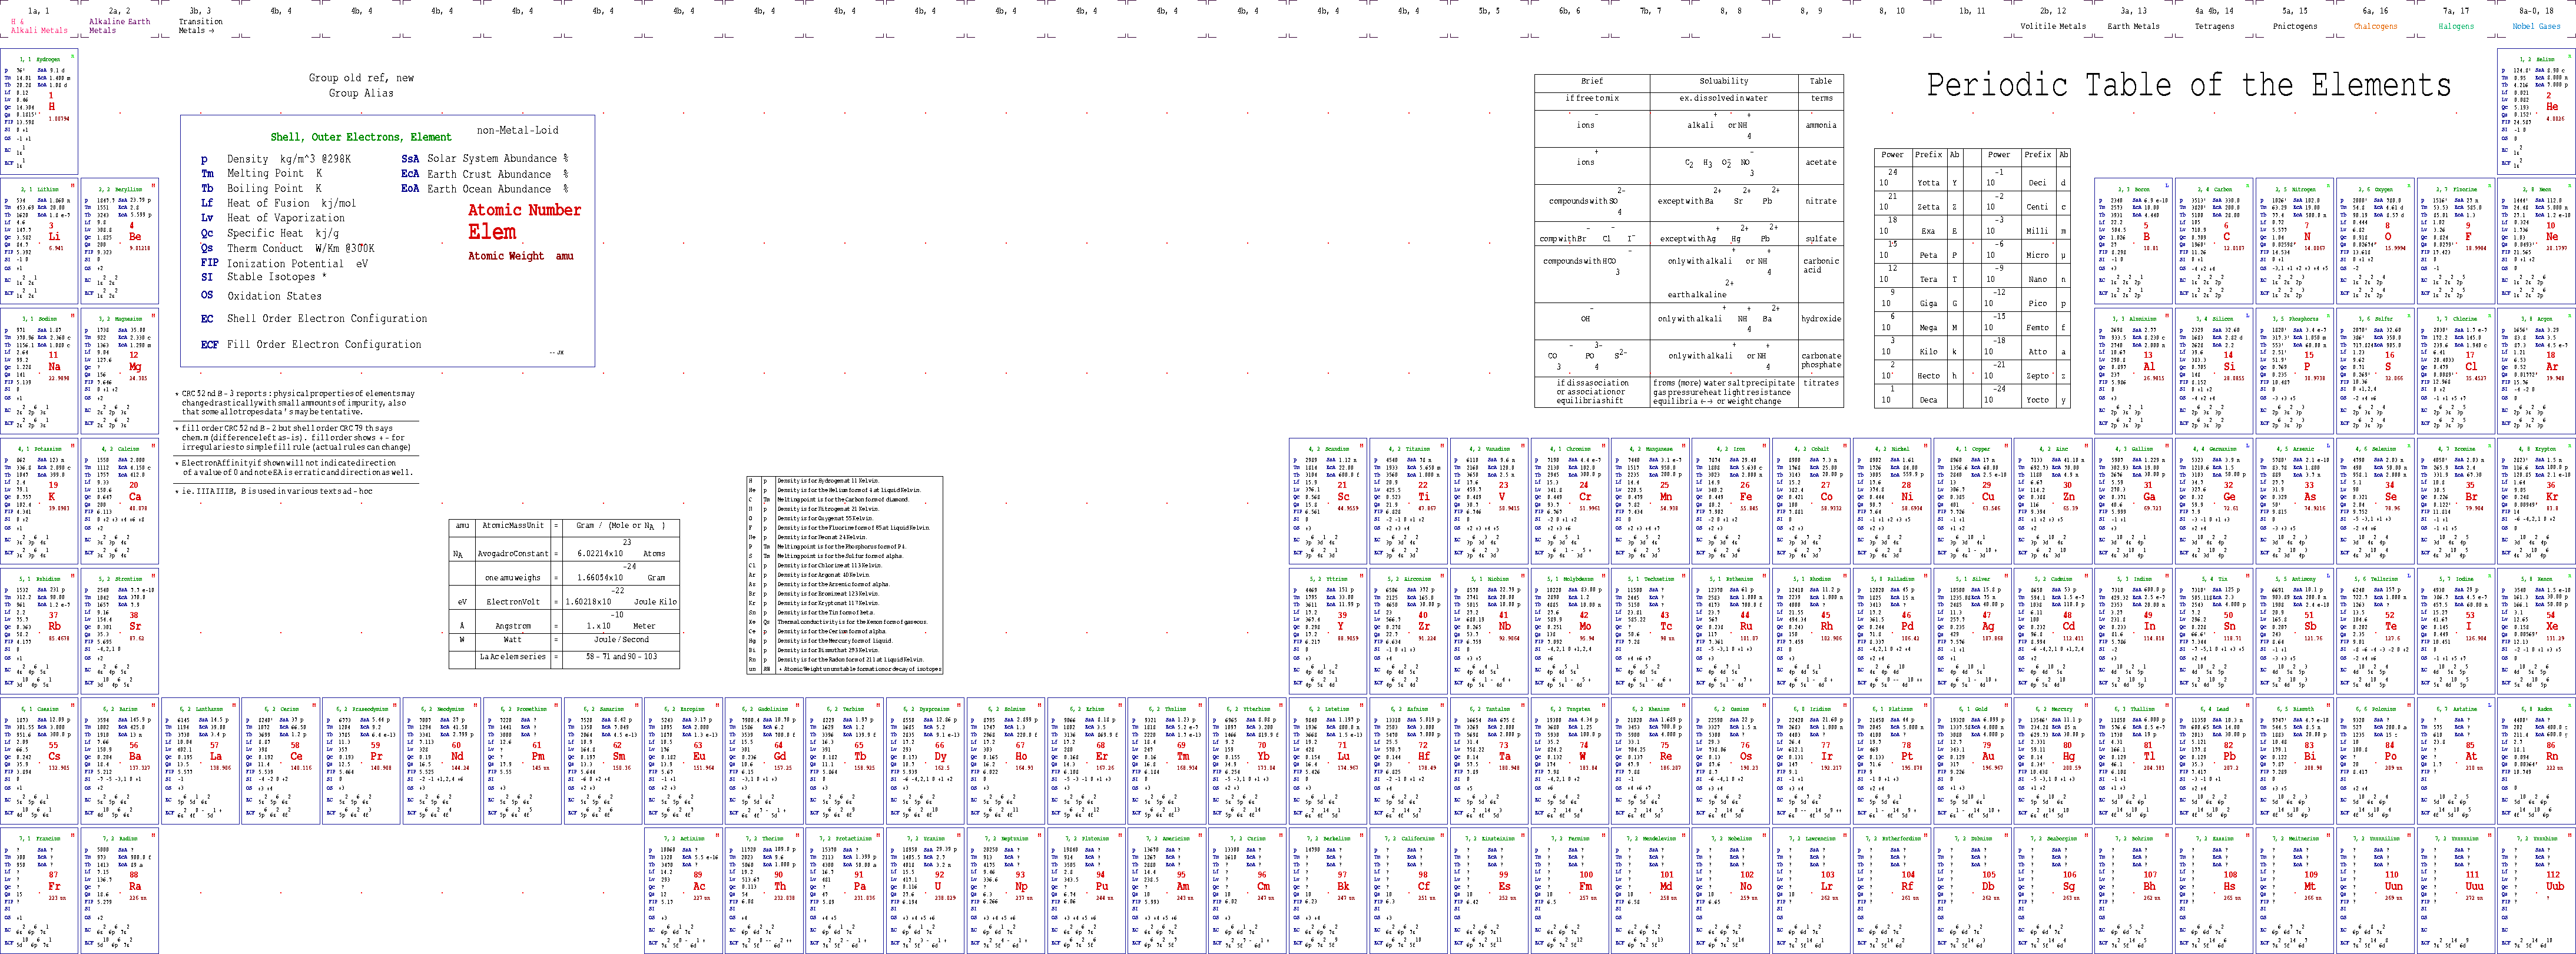 fileperiodictablecpng - Periodic Table C